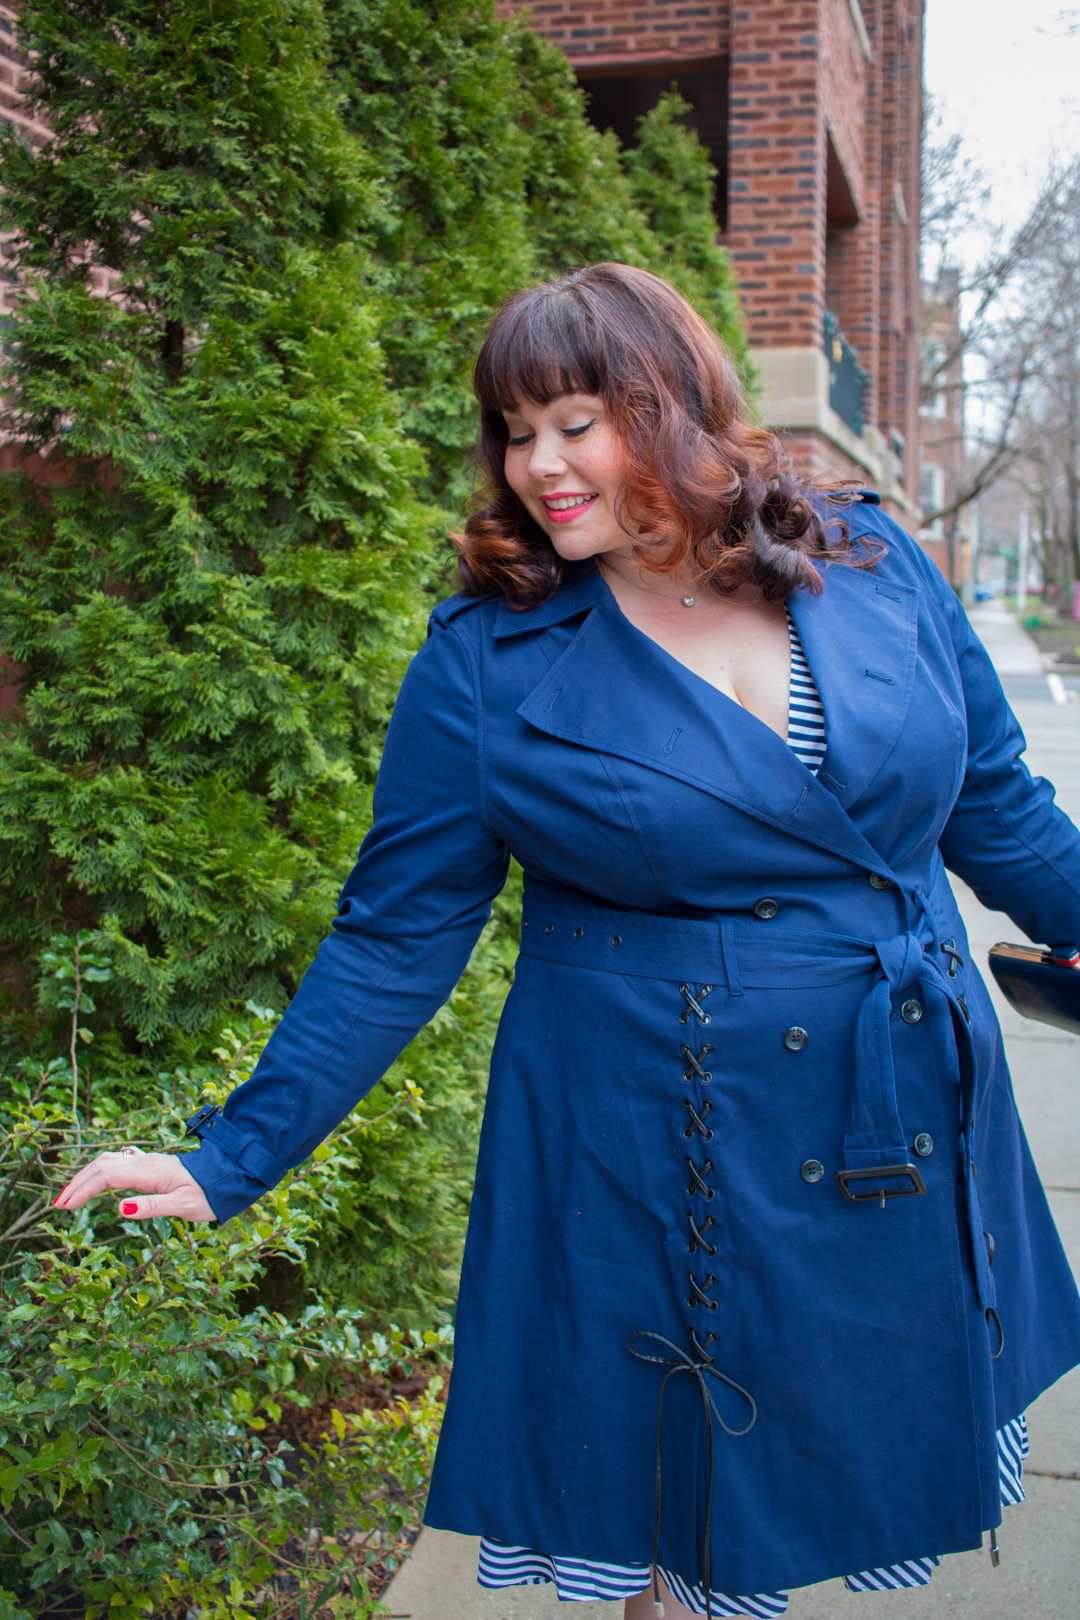 Chicago Plus Size Blogger in a navy lace up Trench Coat by Prabal Gurung from Lane Bryant